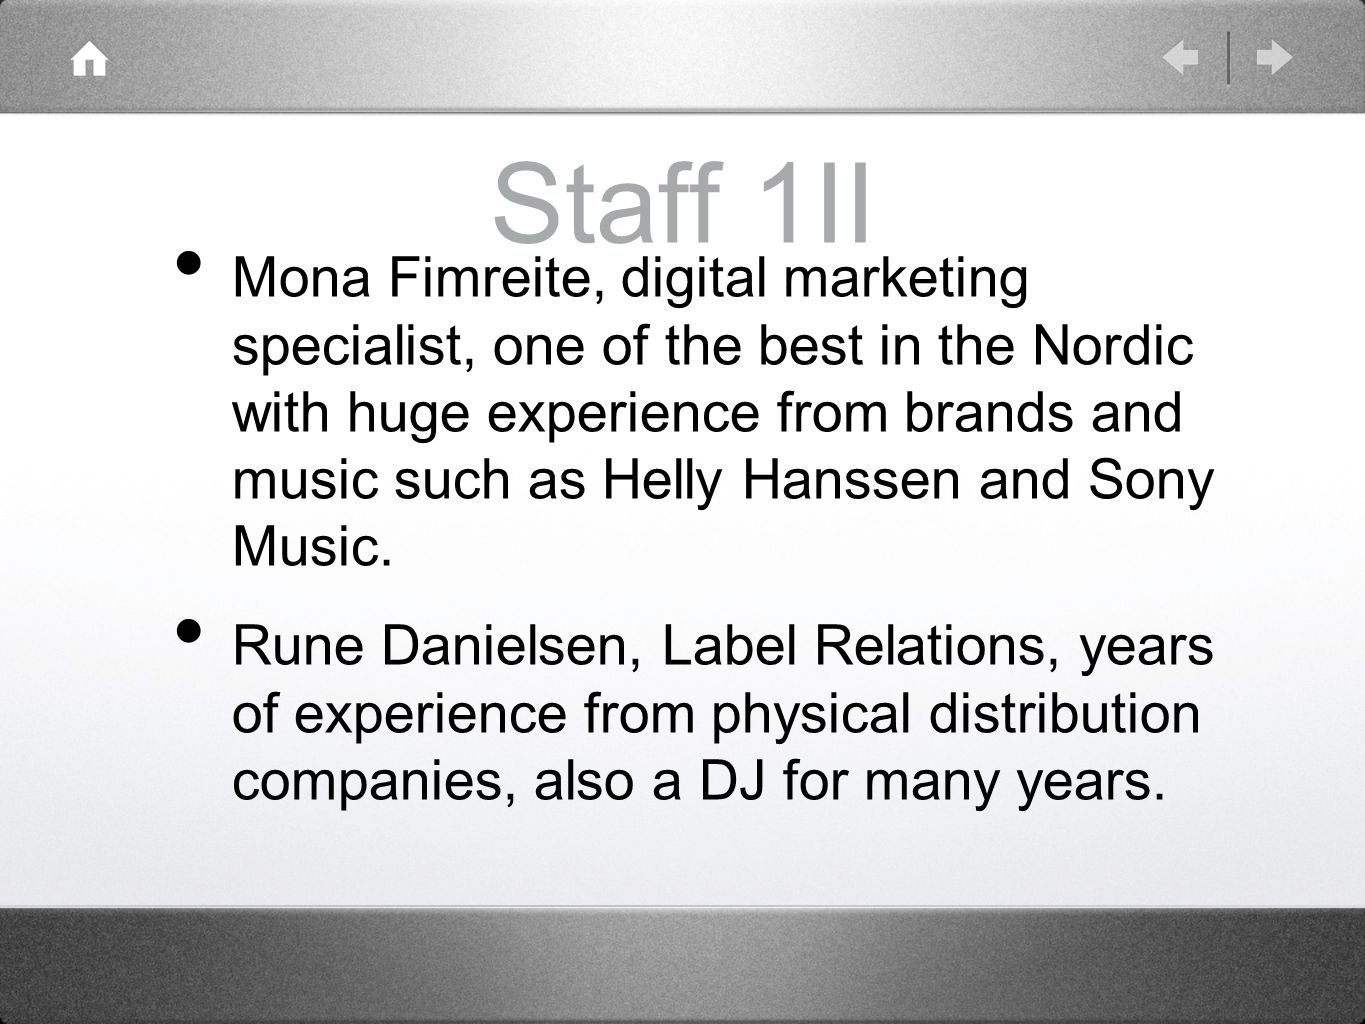 Staff 1II Mona Fimreite, digital marketing specialist, one of the best in the Nordic with huge experience from brands and music such as Helly Hanssen and Sony Music.